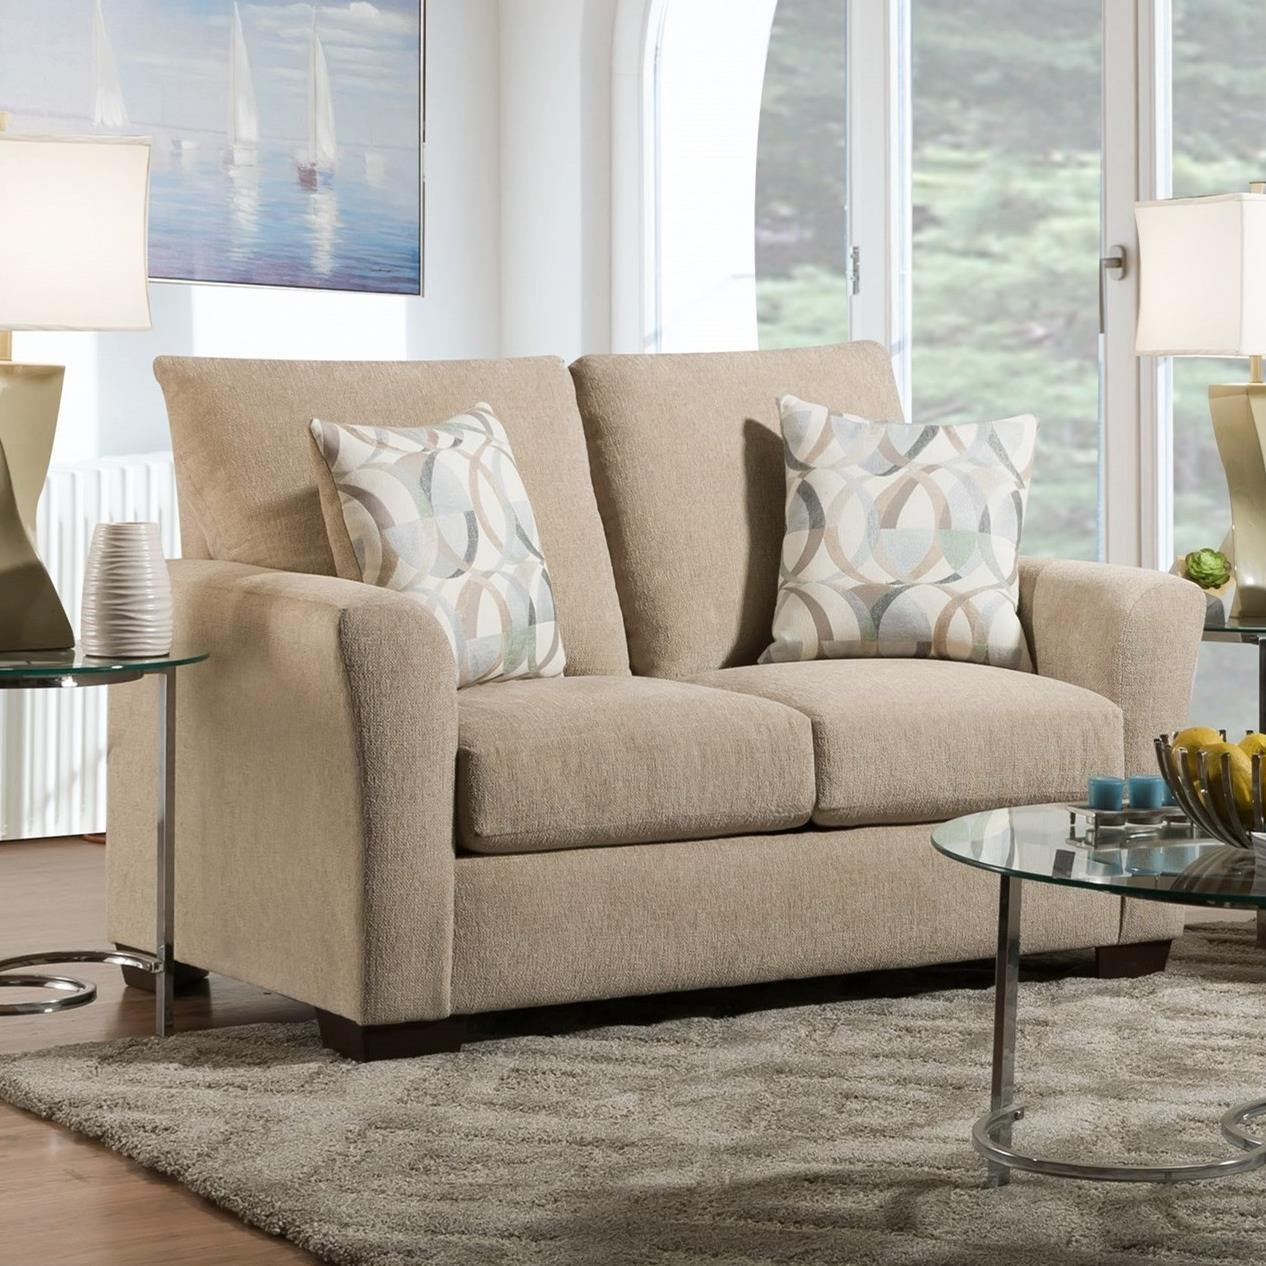 1210 Loveseat by Peak Living at Prime Brothers Furniture